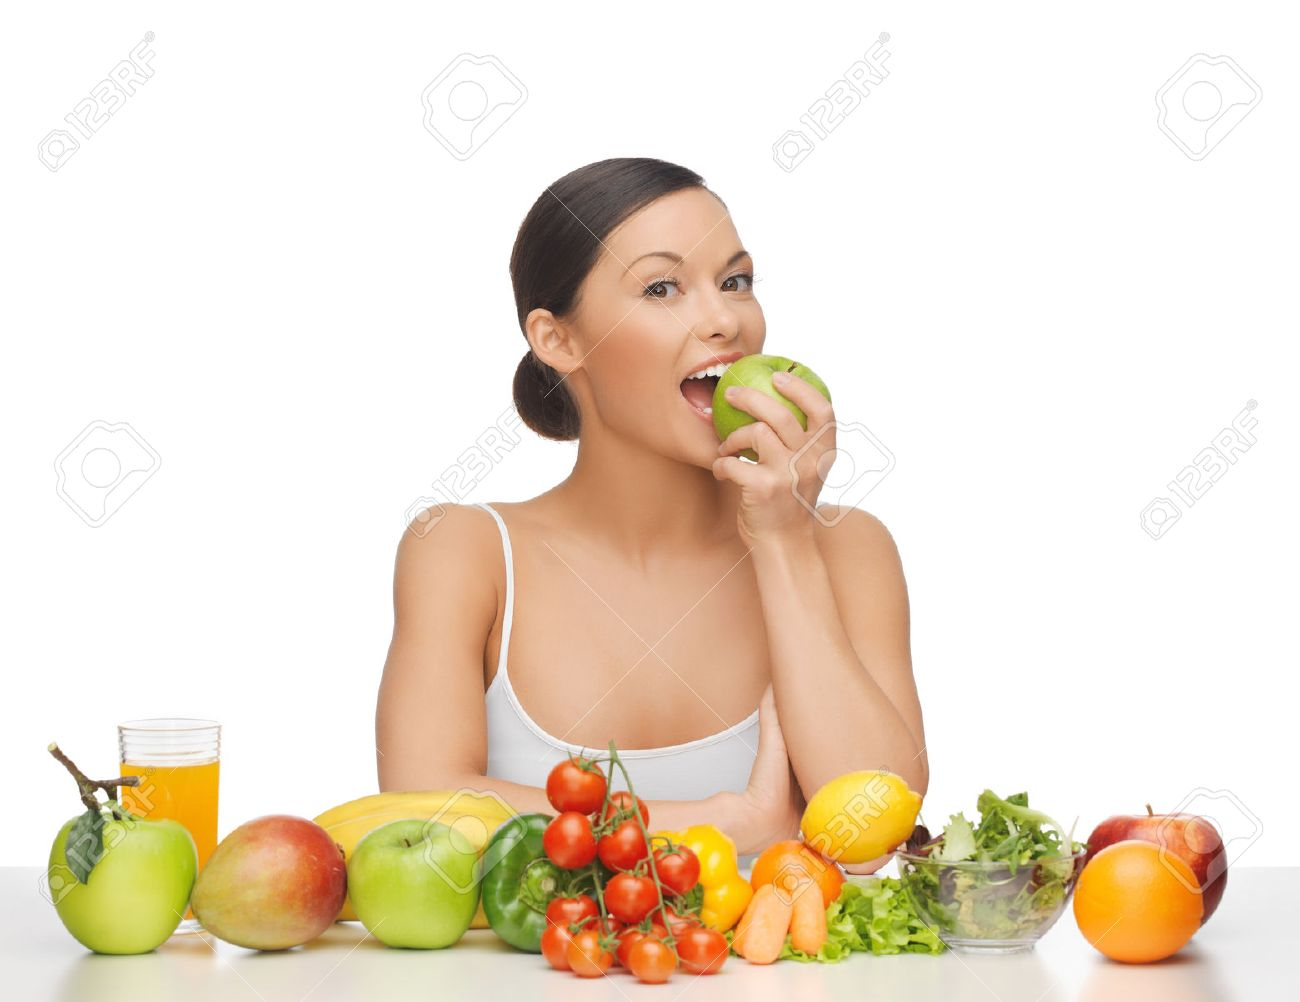 woman eating apple with lot of fruits and vegetables - 50154806